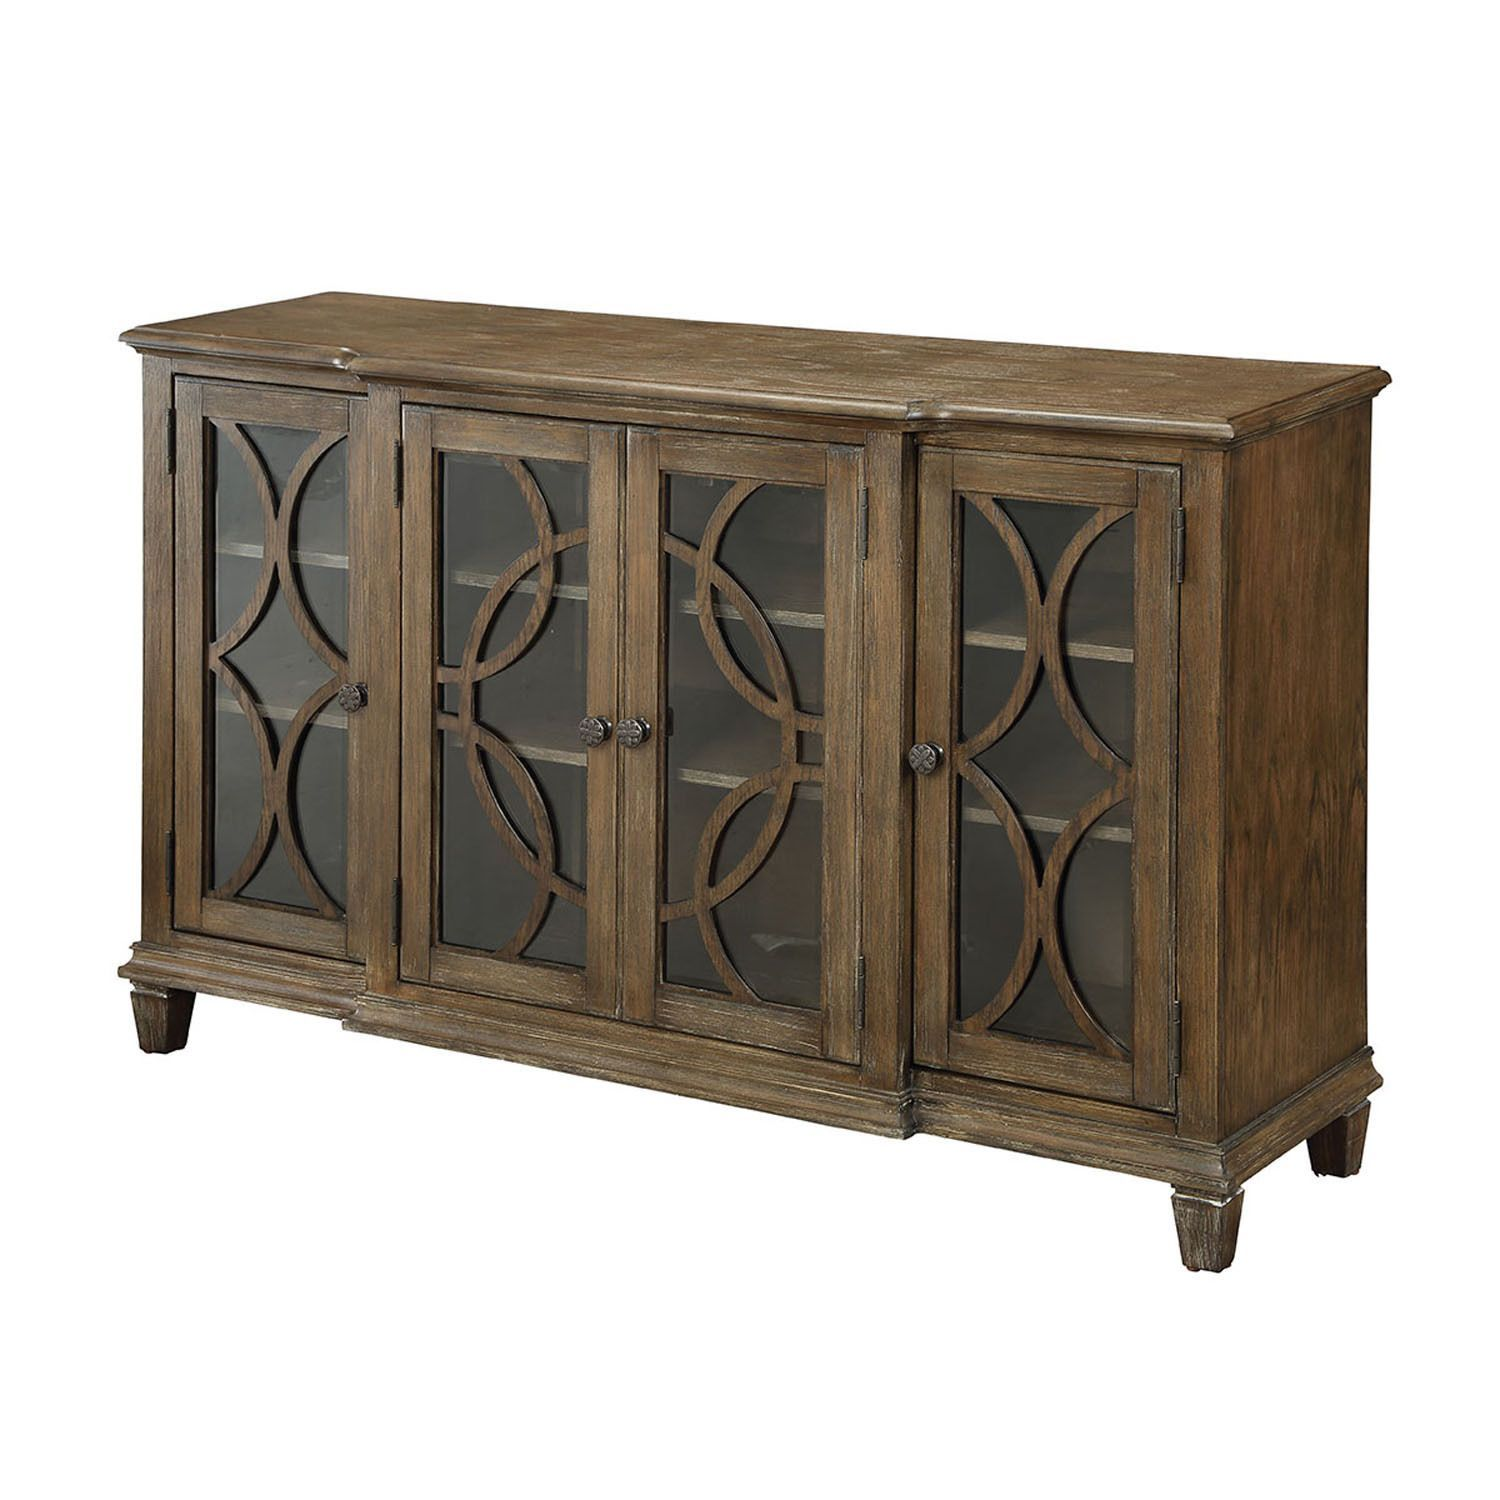 Dining Room Buffet Home Goods Free Shipping On Orders Over 45 At Overstock